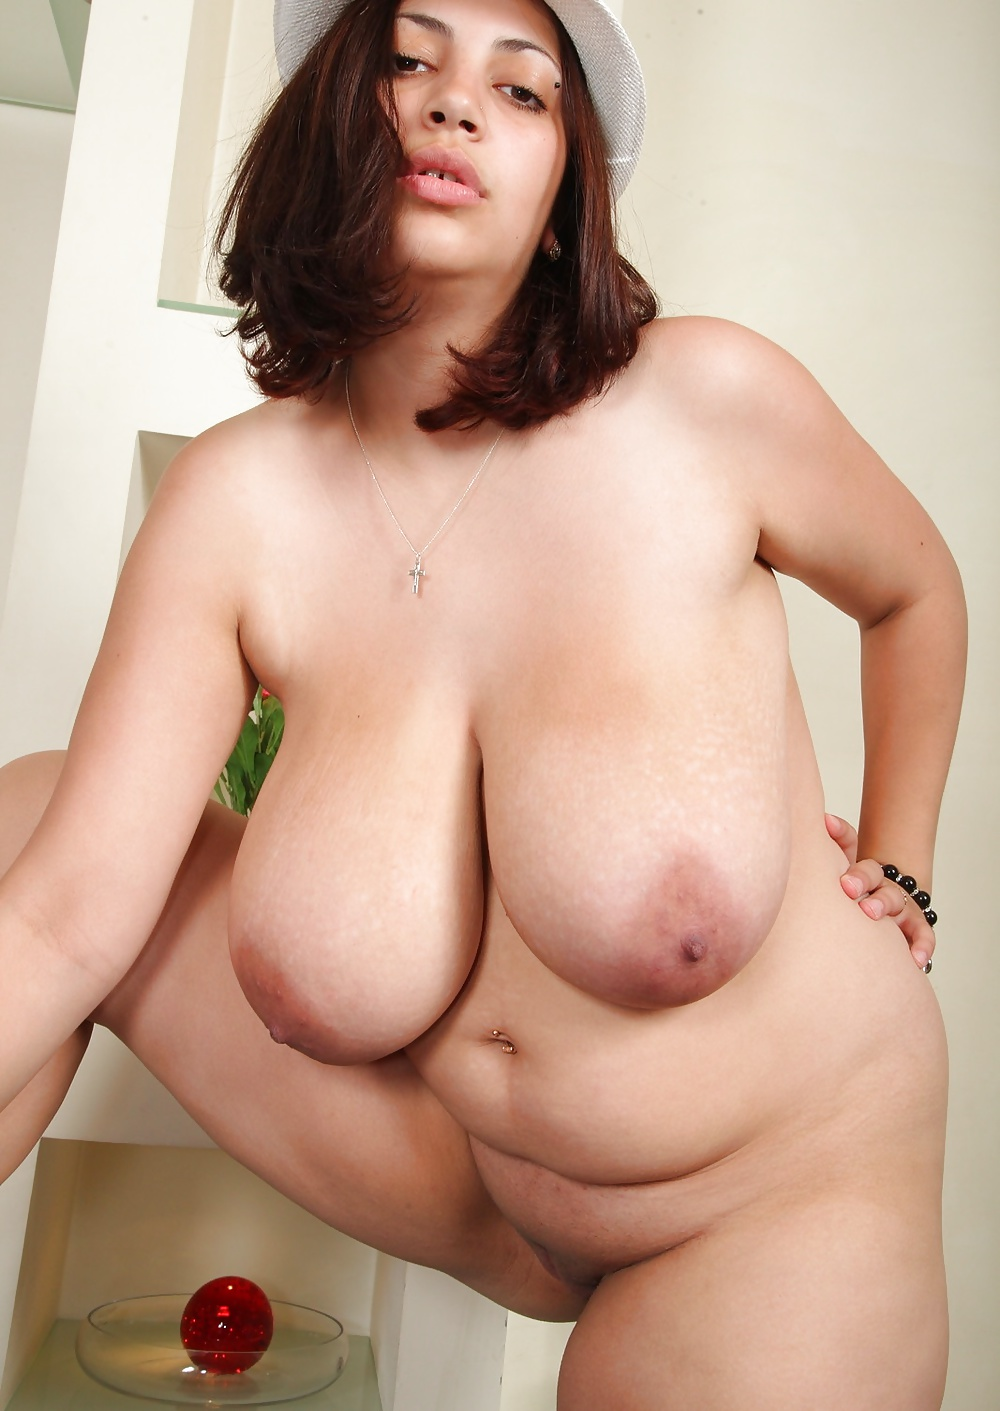 Fat amateur busty girlfriend with big tits